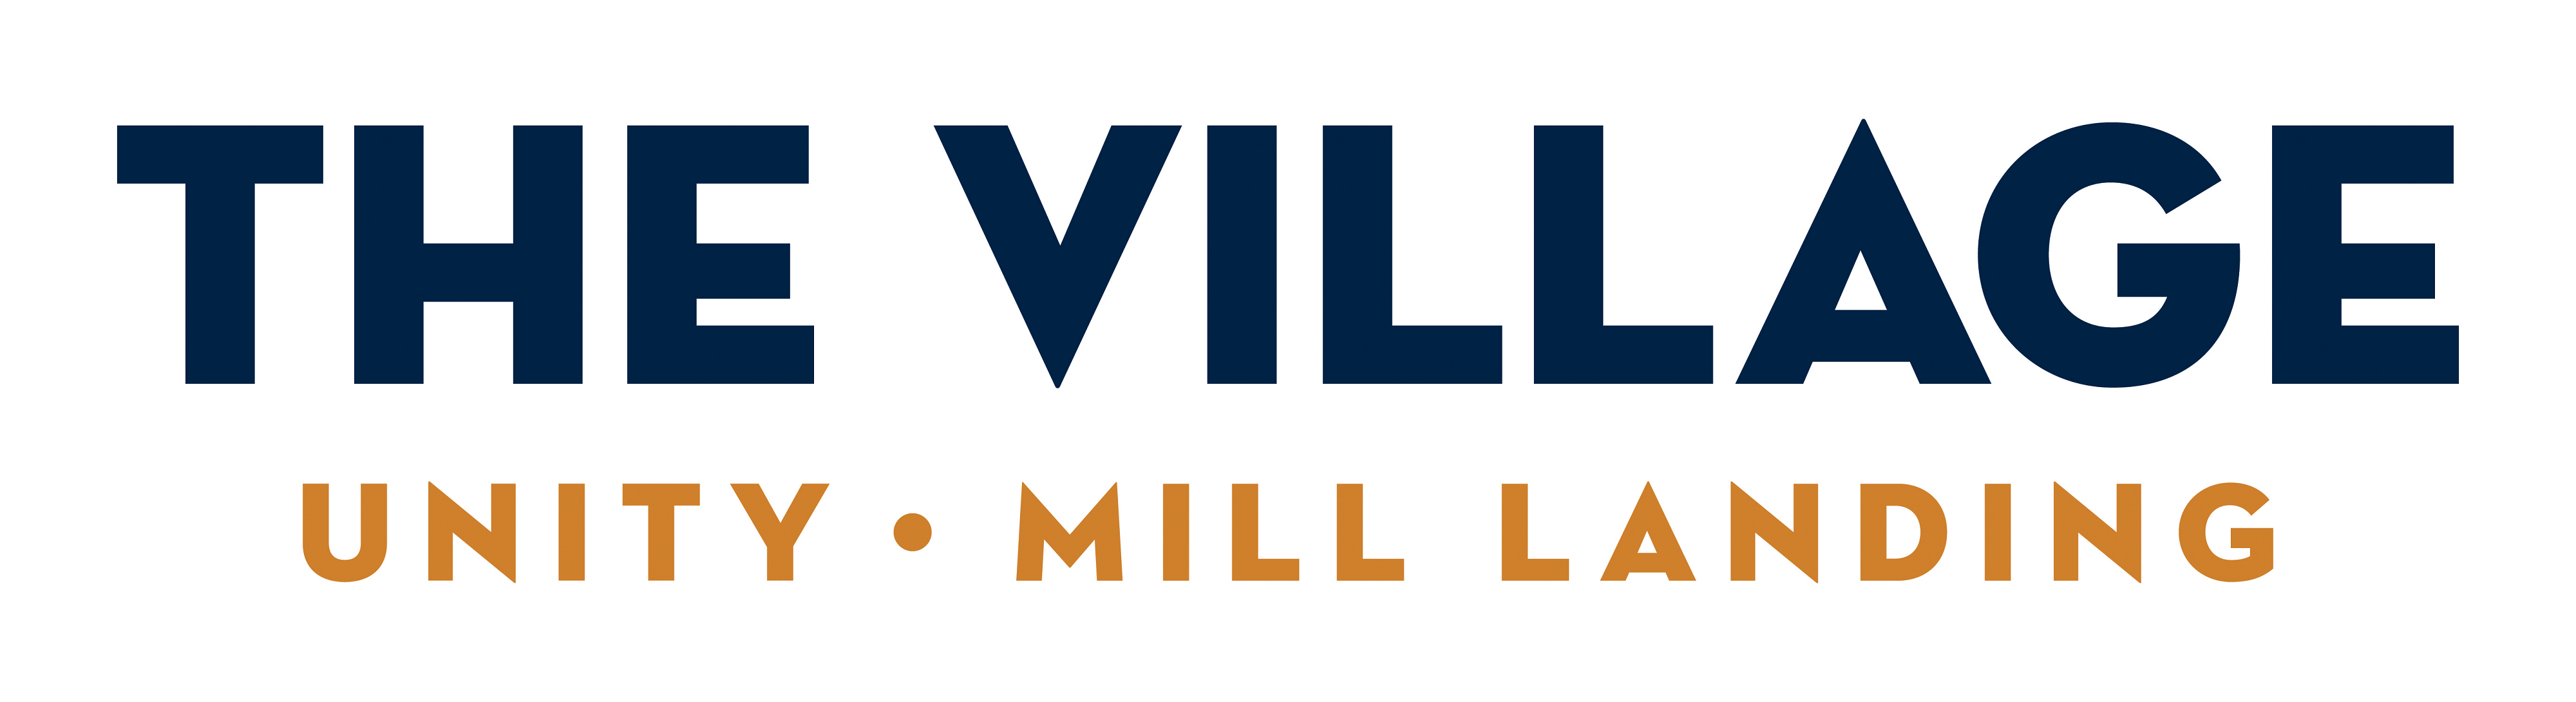 TheVillage_Unity-MillLanding_RGB_LOGO_4000_1090.png